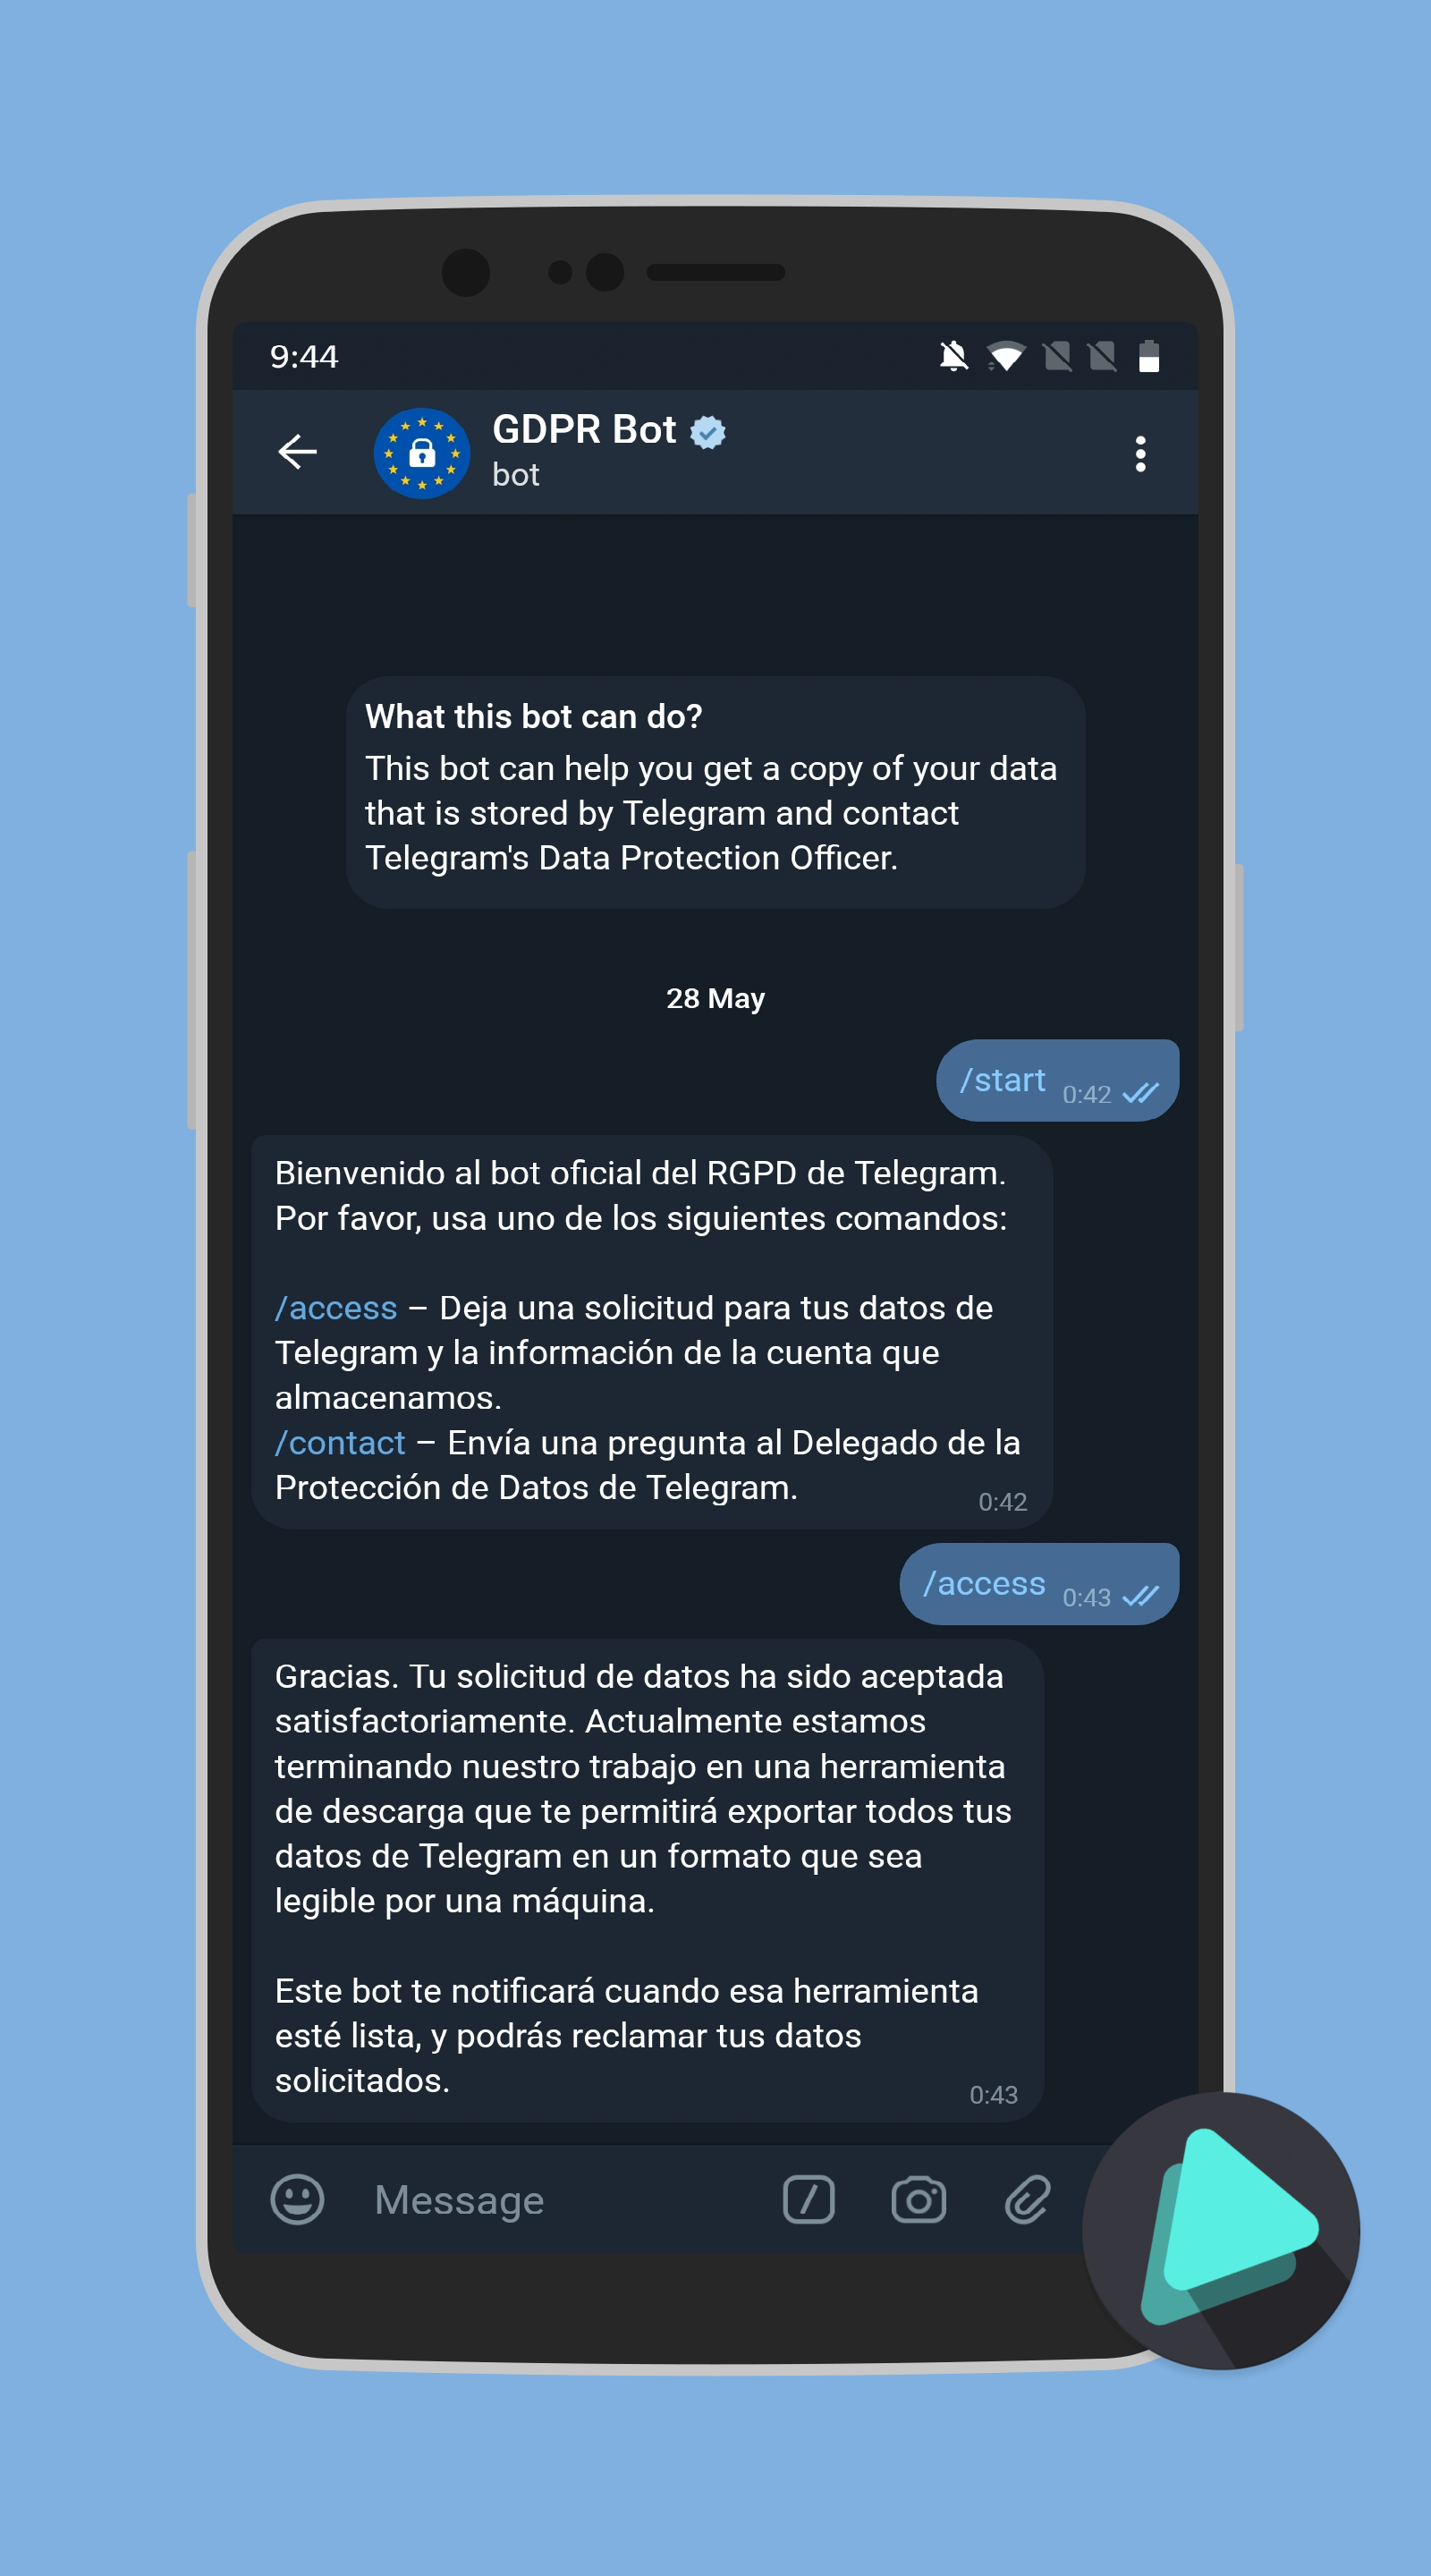 telegram-gdpr-bot